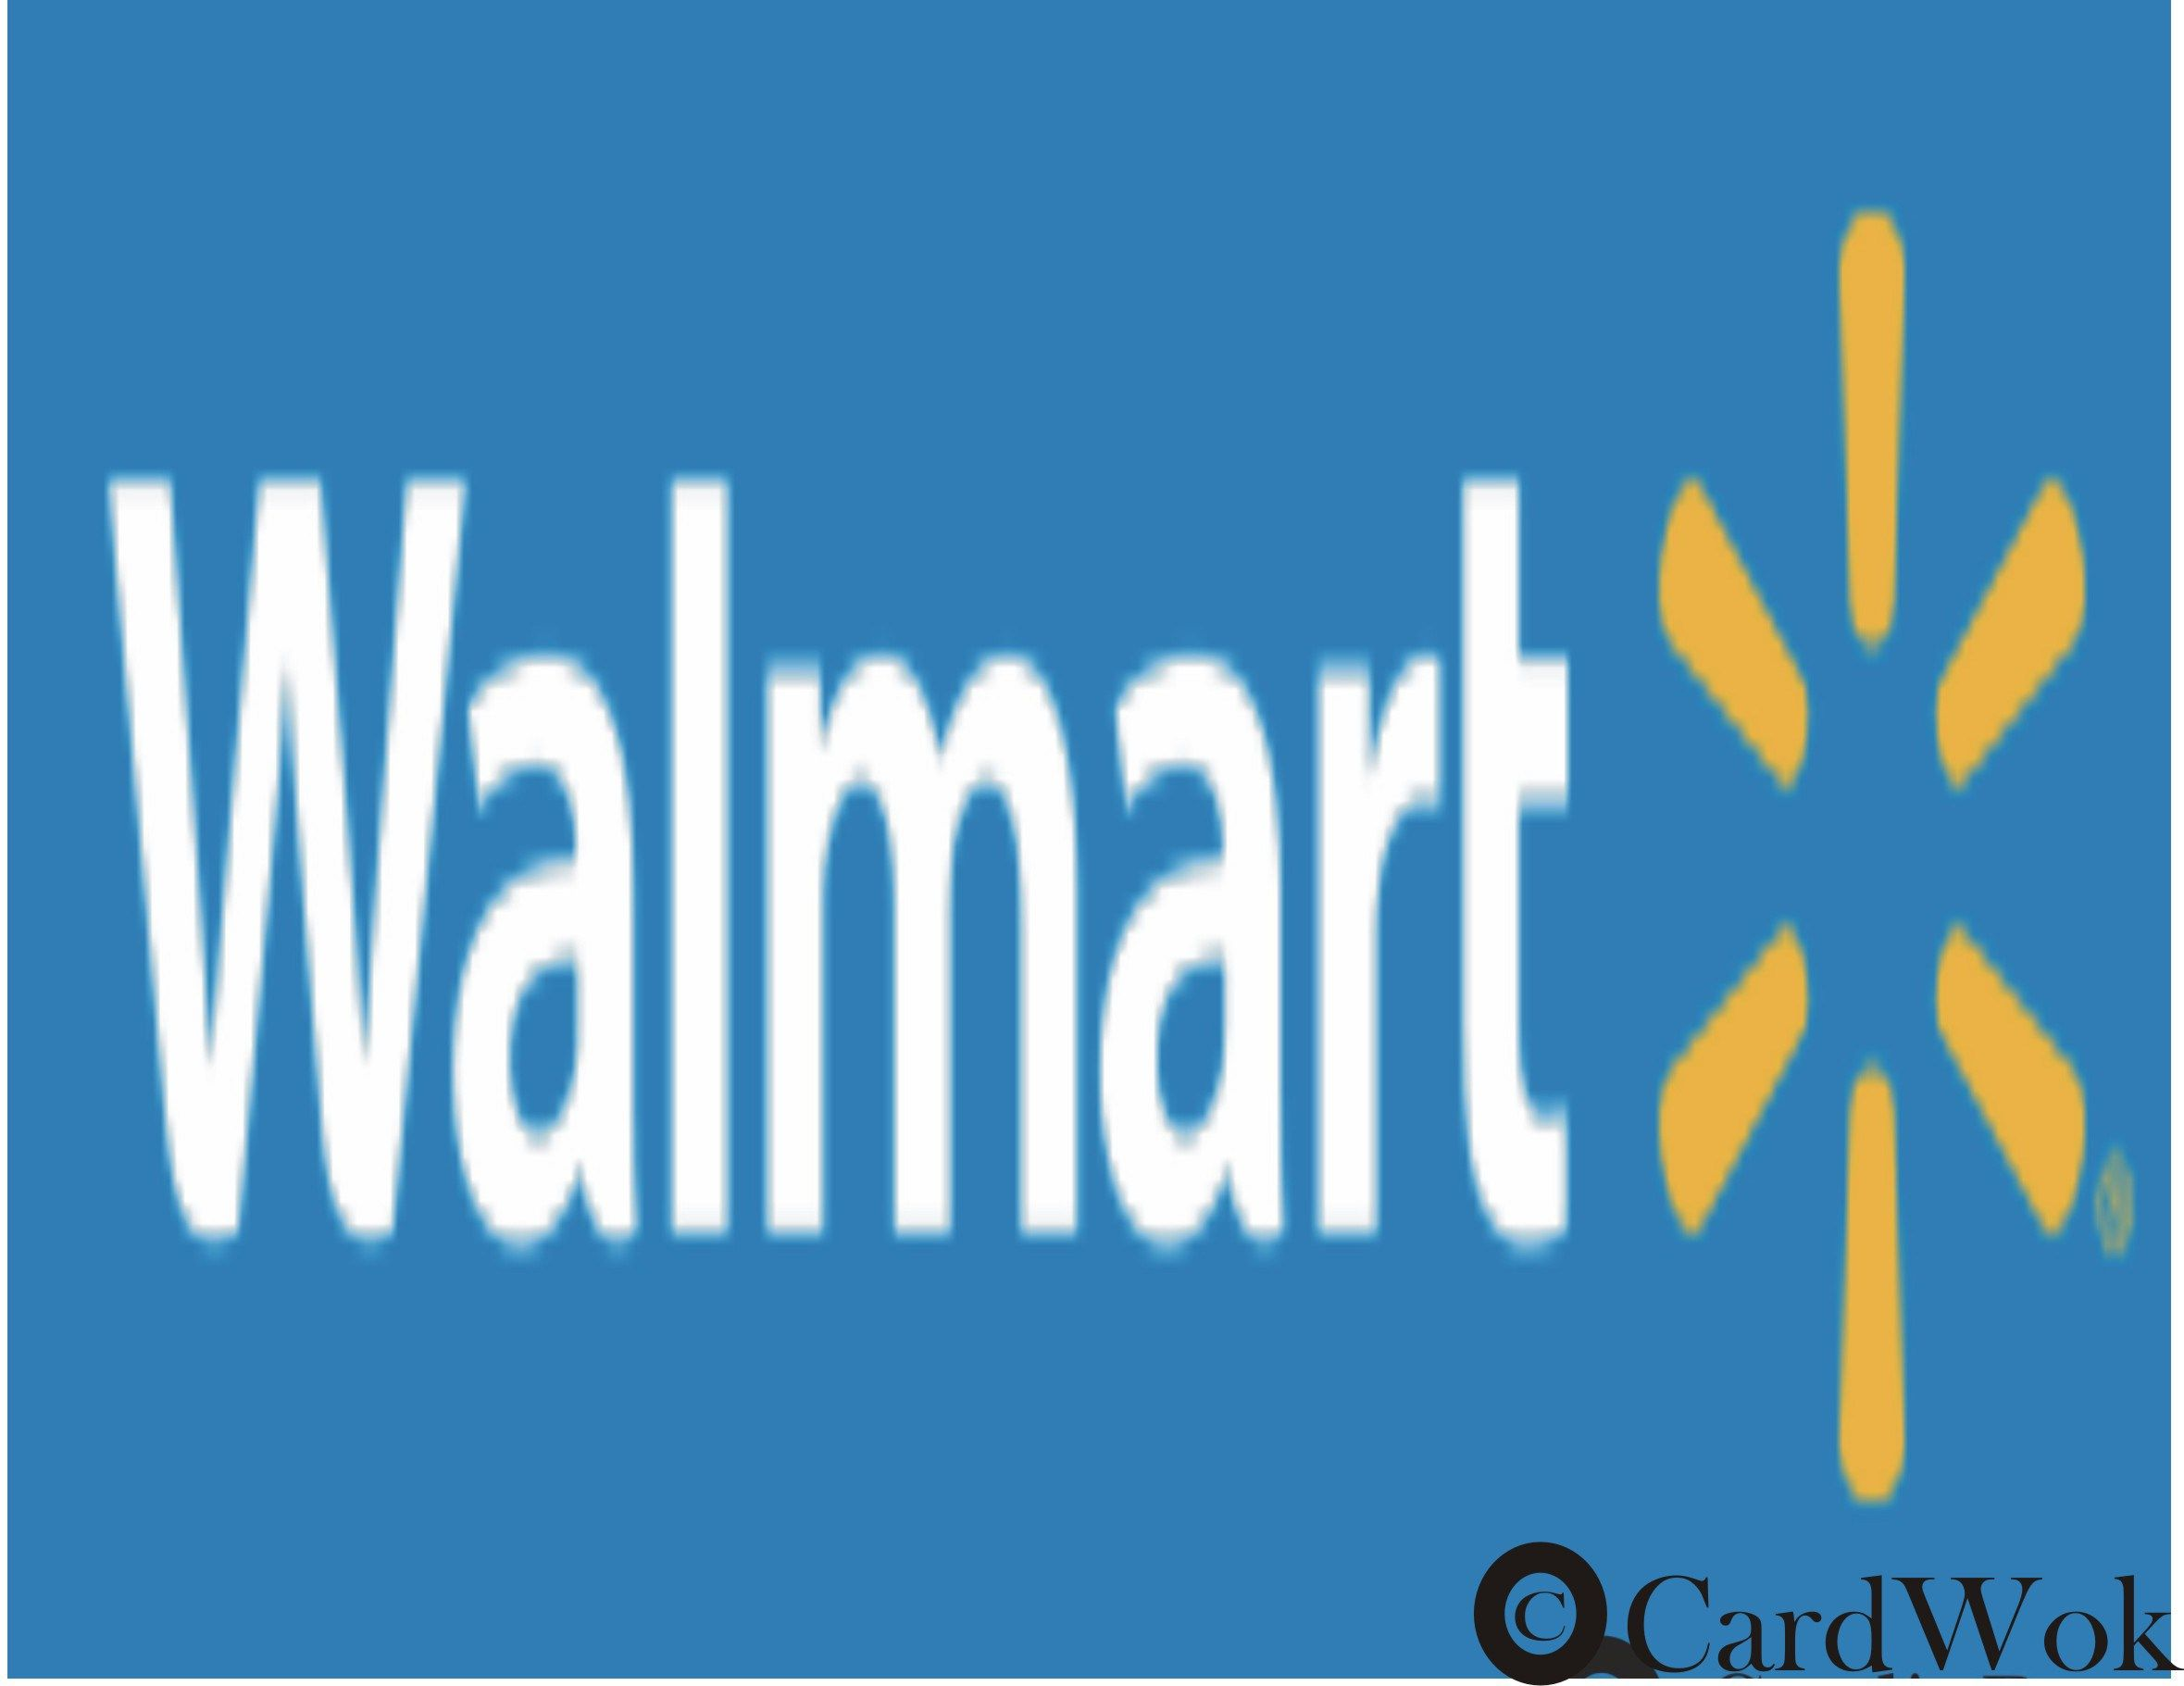 How To Apply For Walmart Credit Card Account Credit card